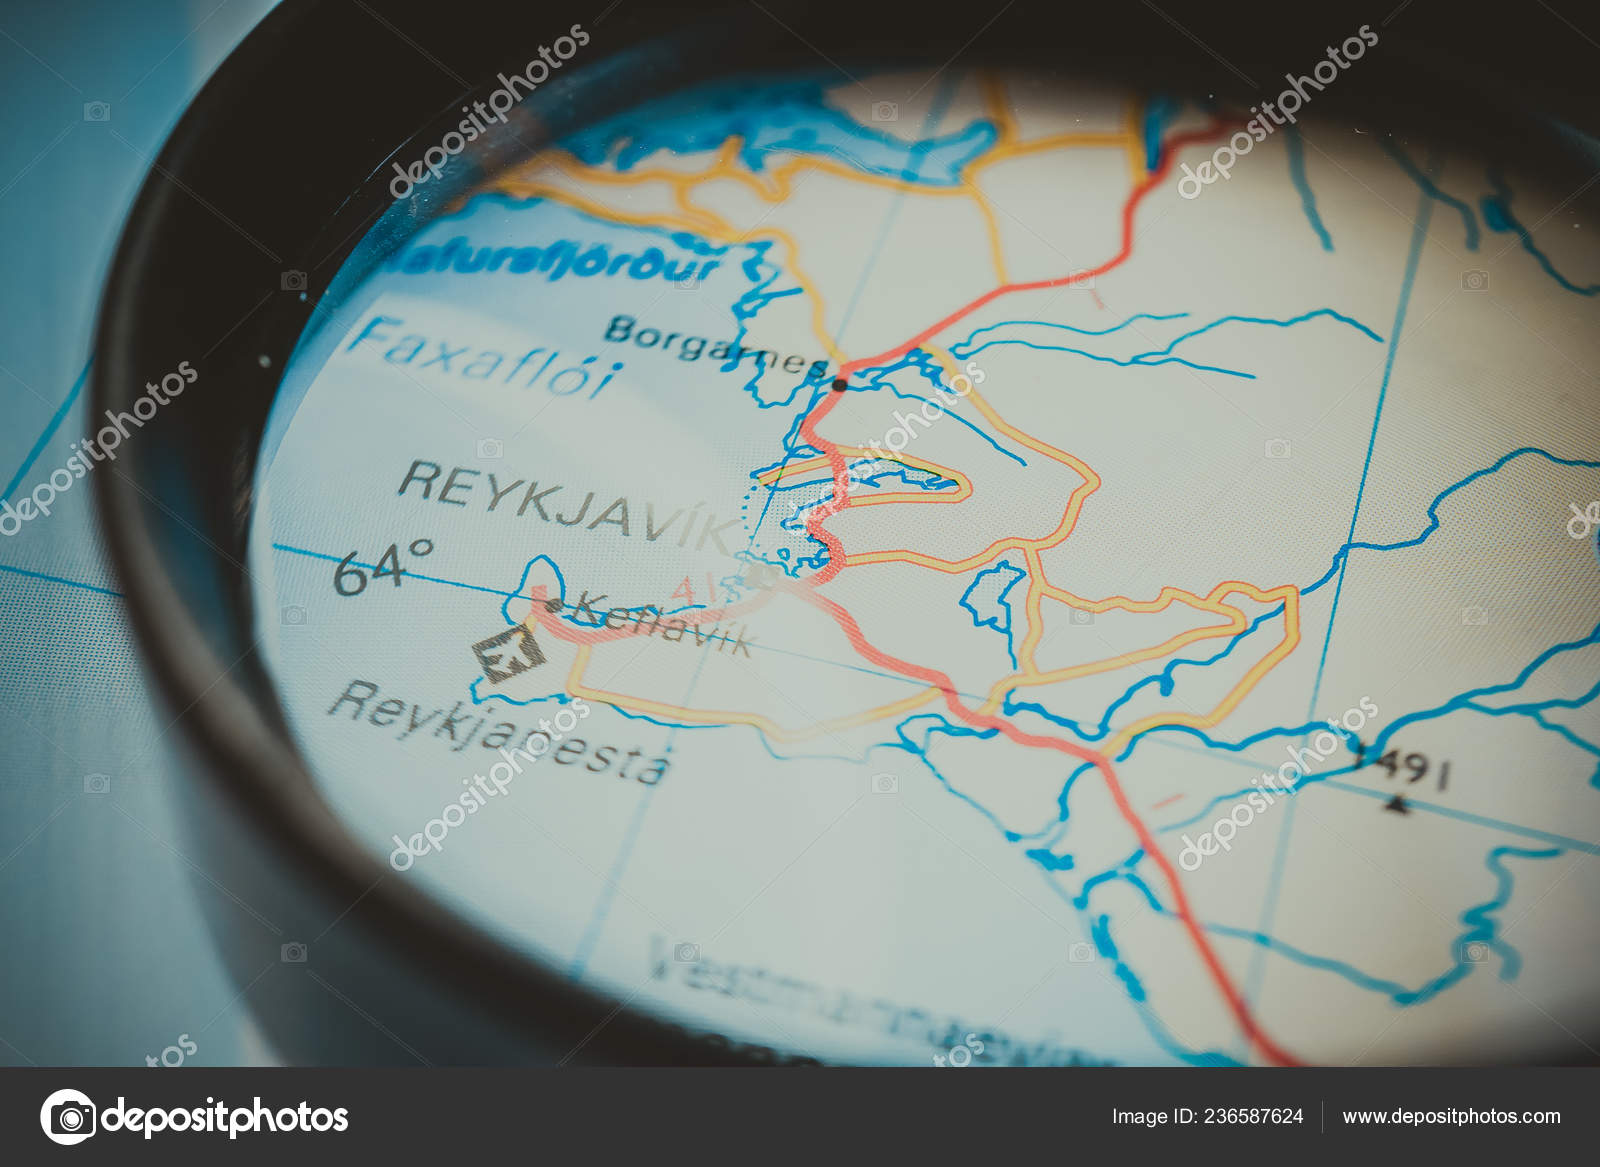 Iceland Map – Stock Editorial Photo © aallm #236587624 on iceland mountains map, iceland map by christiane engel, iceland scandinavia europe, iceland map black and white, iceland physical map, iceland on globe, iceland flag, iceland map with map key, iceland travel, iceland country map, iceland road map, iceland map with volcanoes, iceland global map, world map, iceland topographic map,